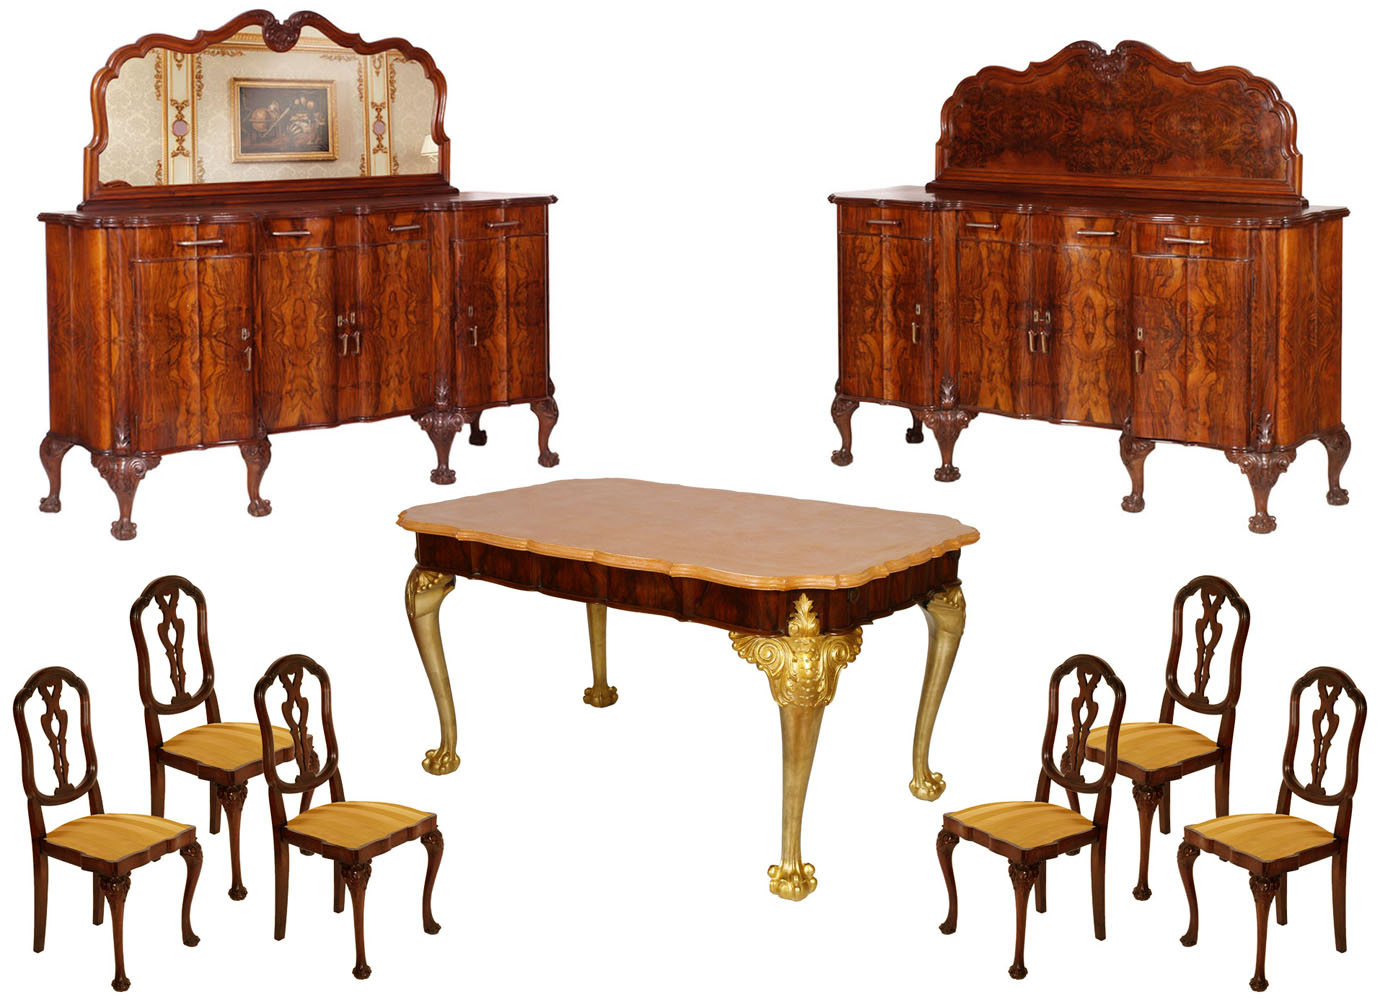 luxury-antique-baroque-dining-room-set-chippendale-MAG41-1